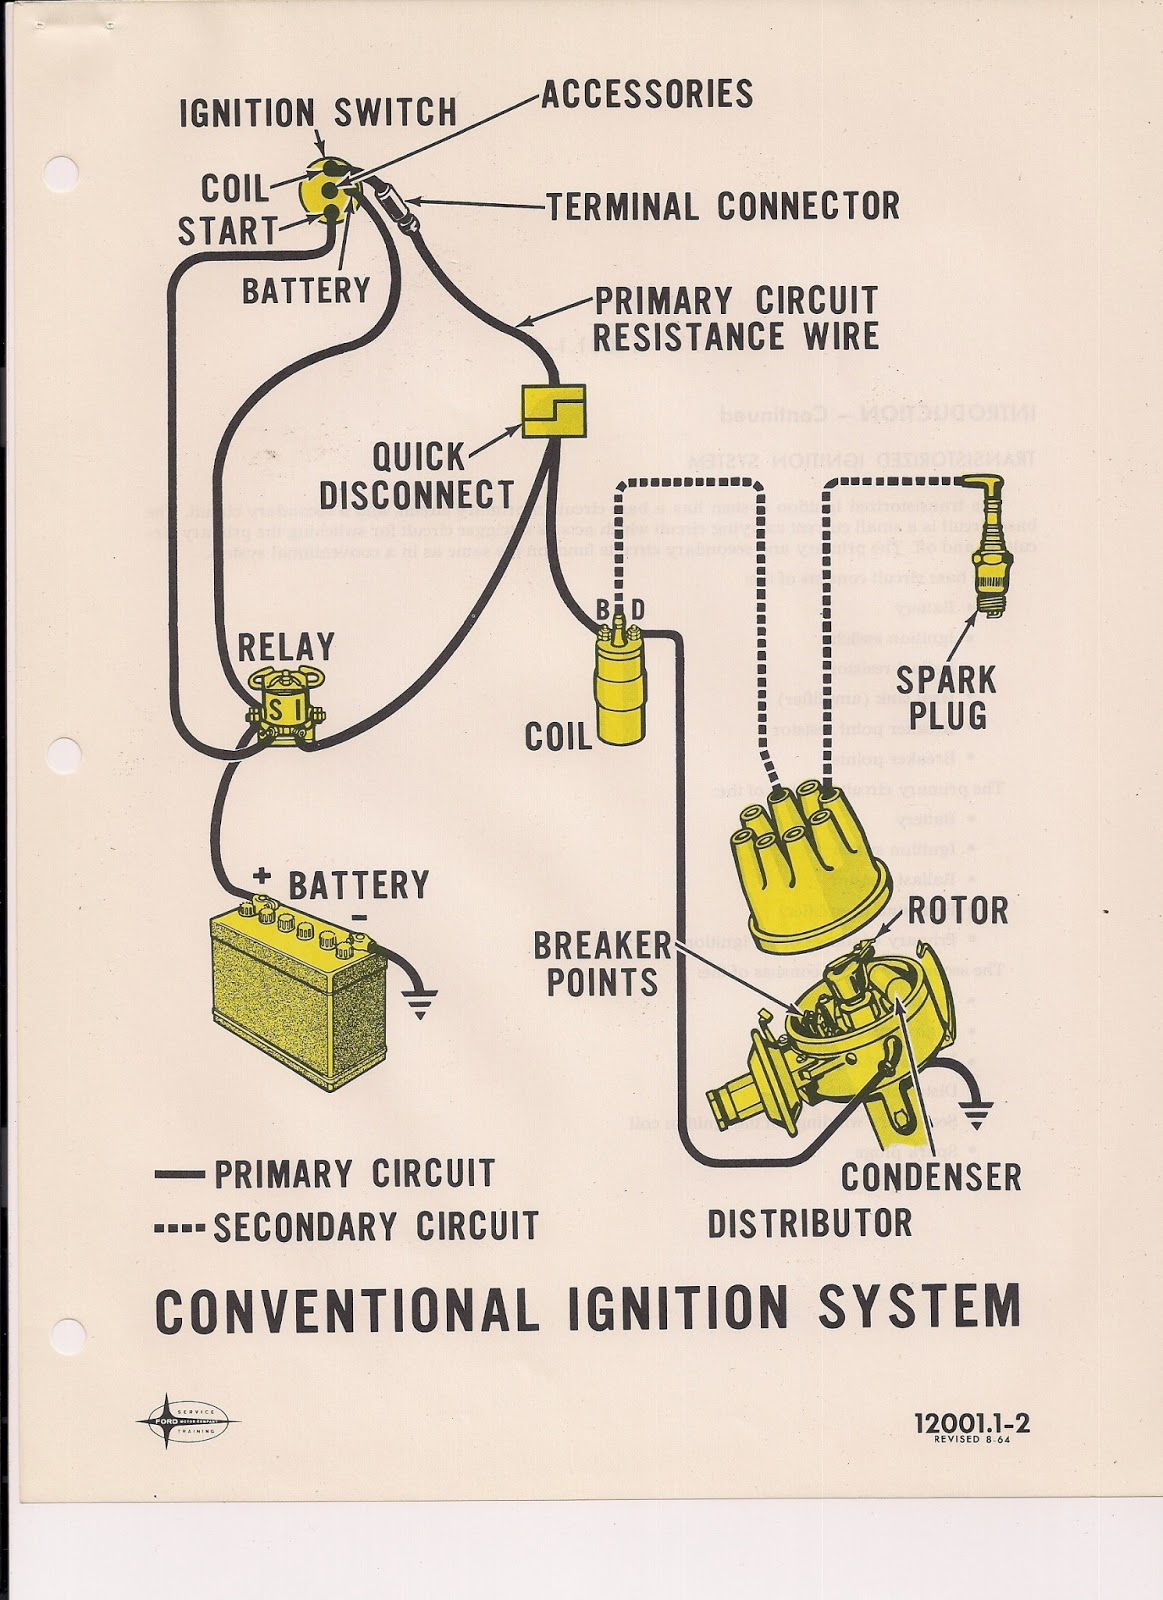 Ignition+1 the care and feeding of ponies mustang ignition system 1965 and 1966 1966 mustang ignition switch wiring diagram at n-0.co